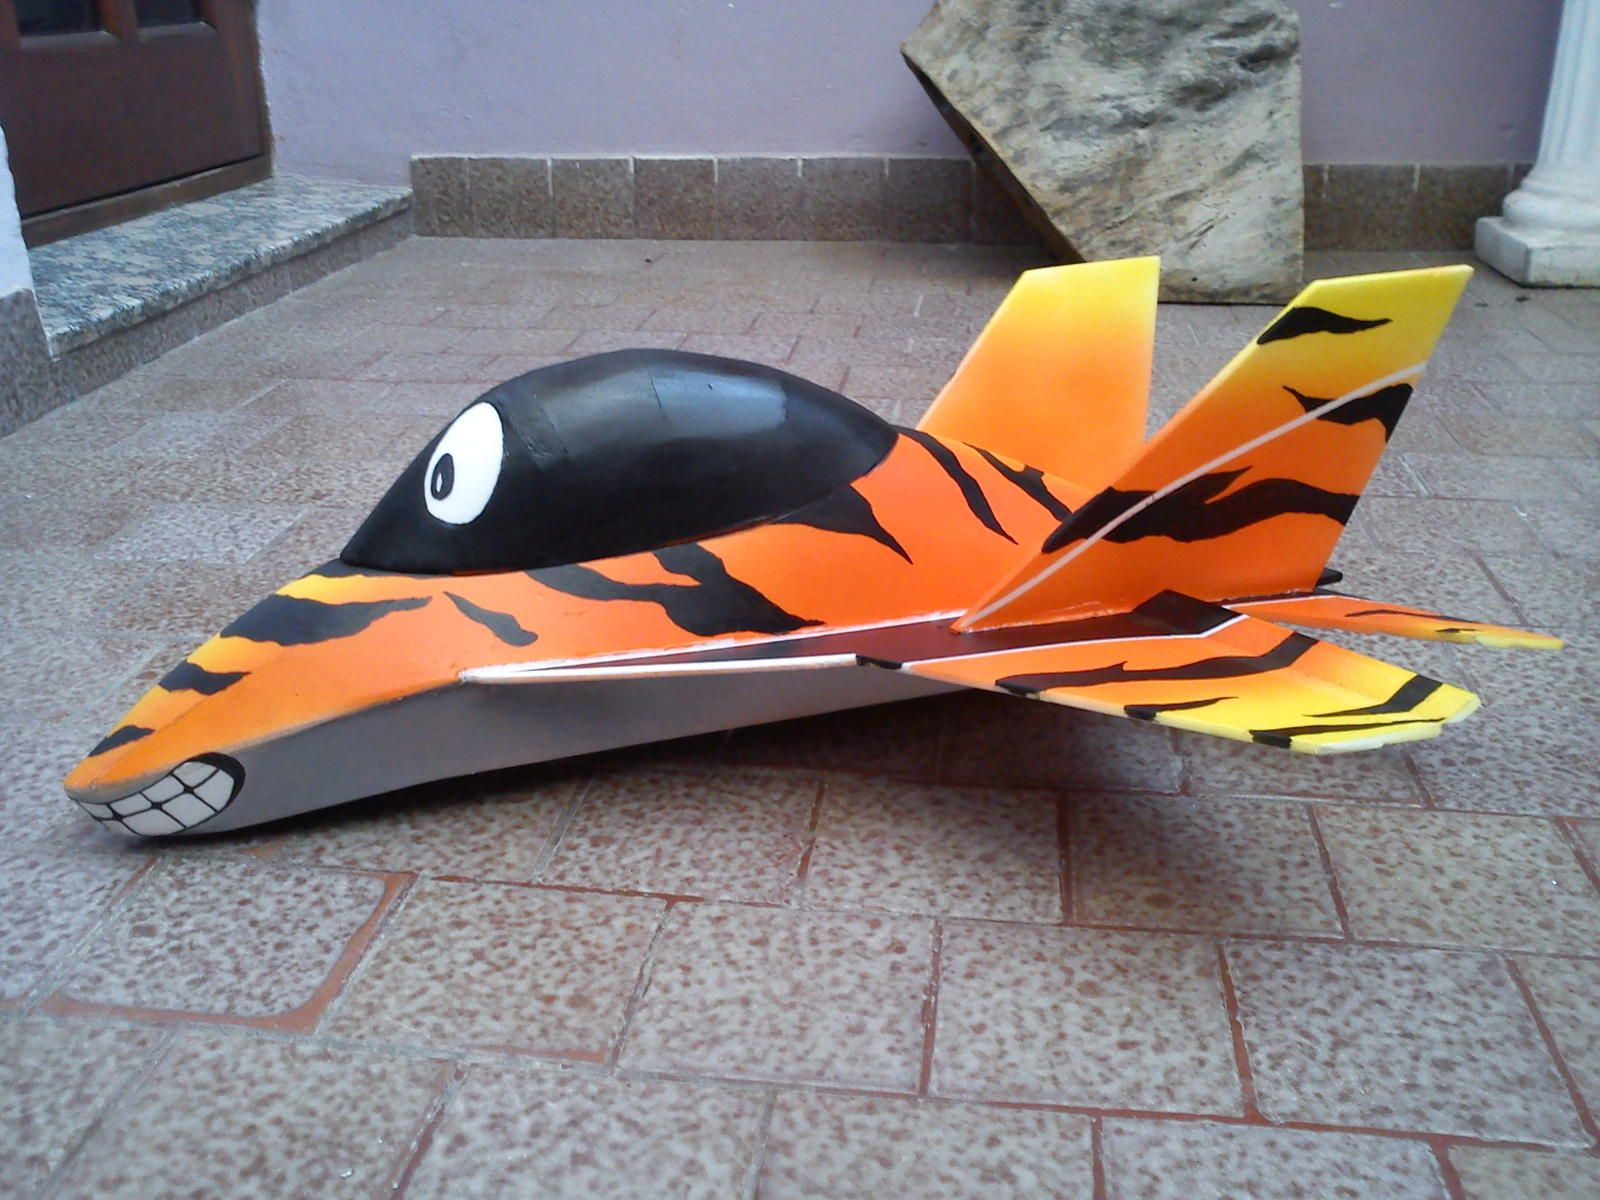 I believe this example is called a mig19 toon plane